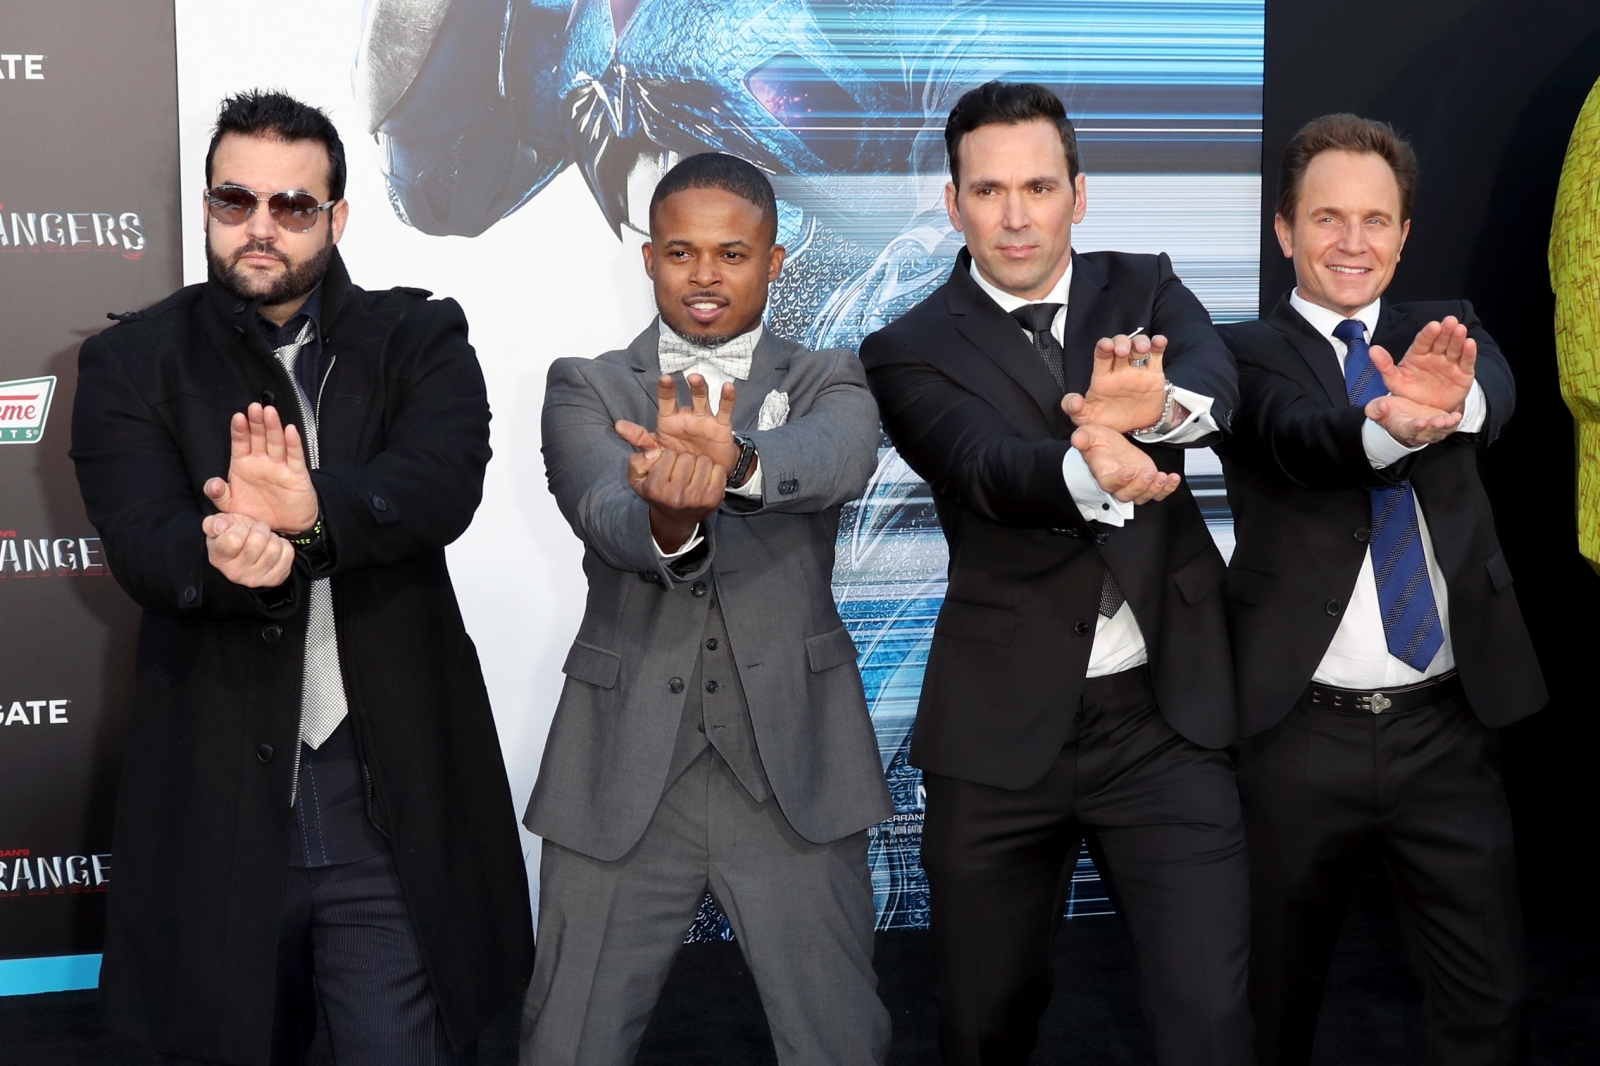 the original power rangers reunite at premiere for new film and it 39 s morphenomenal. Black Bedroom Furniture Sets. Home Design Ideas